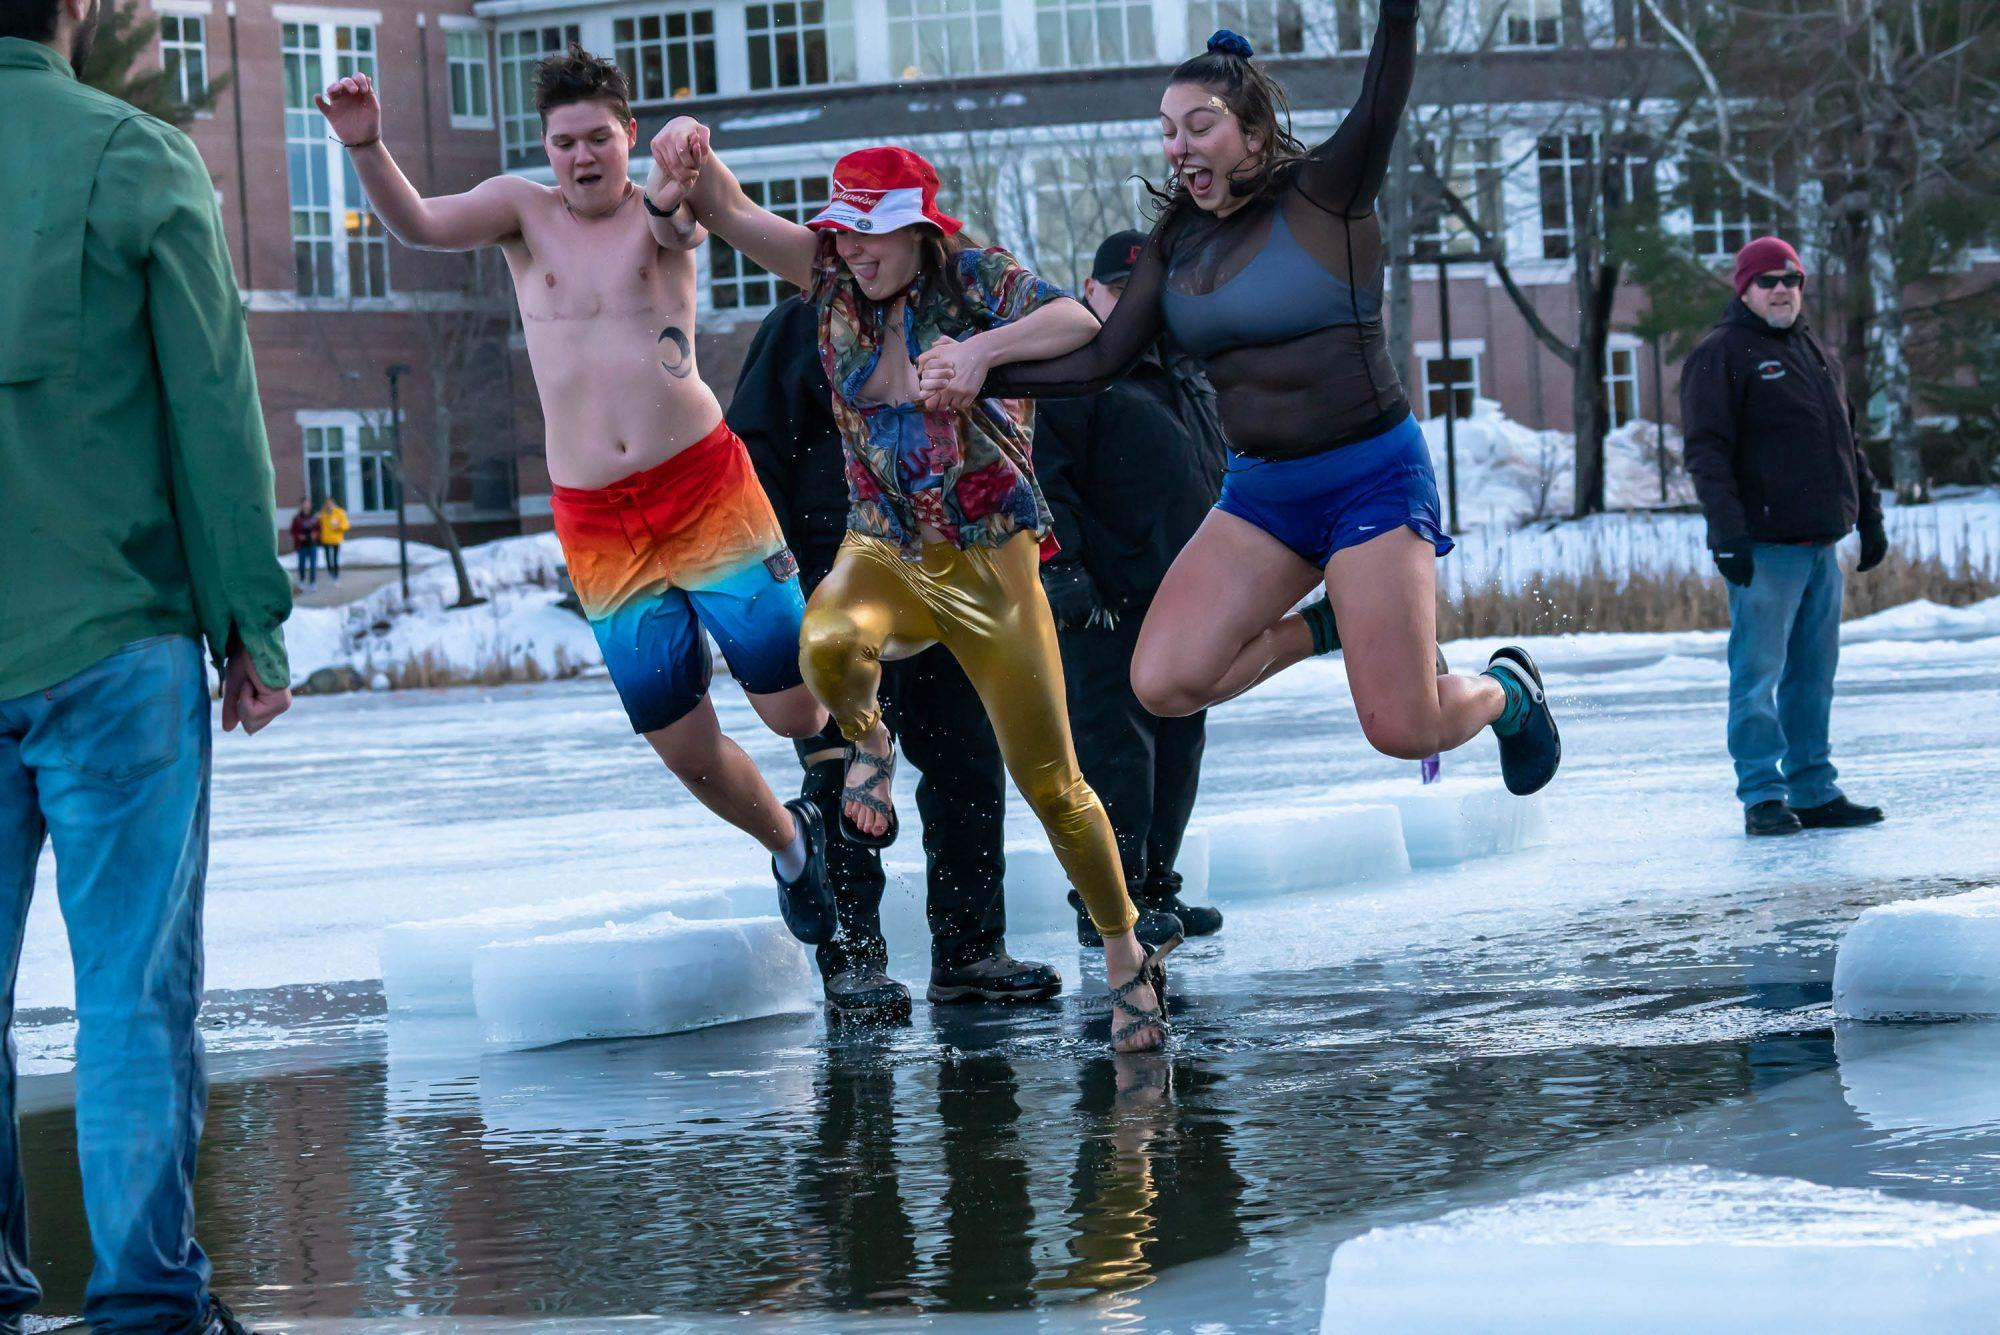 Due to public health concerns, Winter Carnival's hallmark event, Puddle Jump, will not occur in 2021. However, organizers say the limitations have provided space for rethinking the nearly-century old winter celebration.